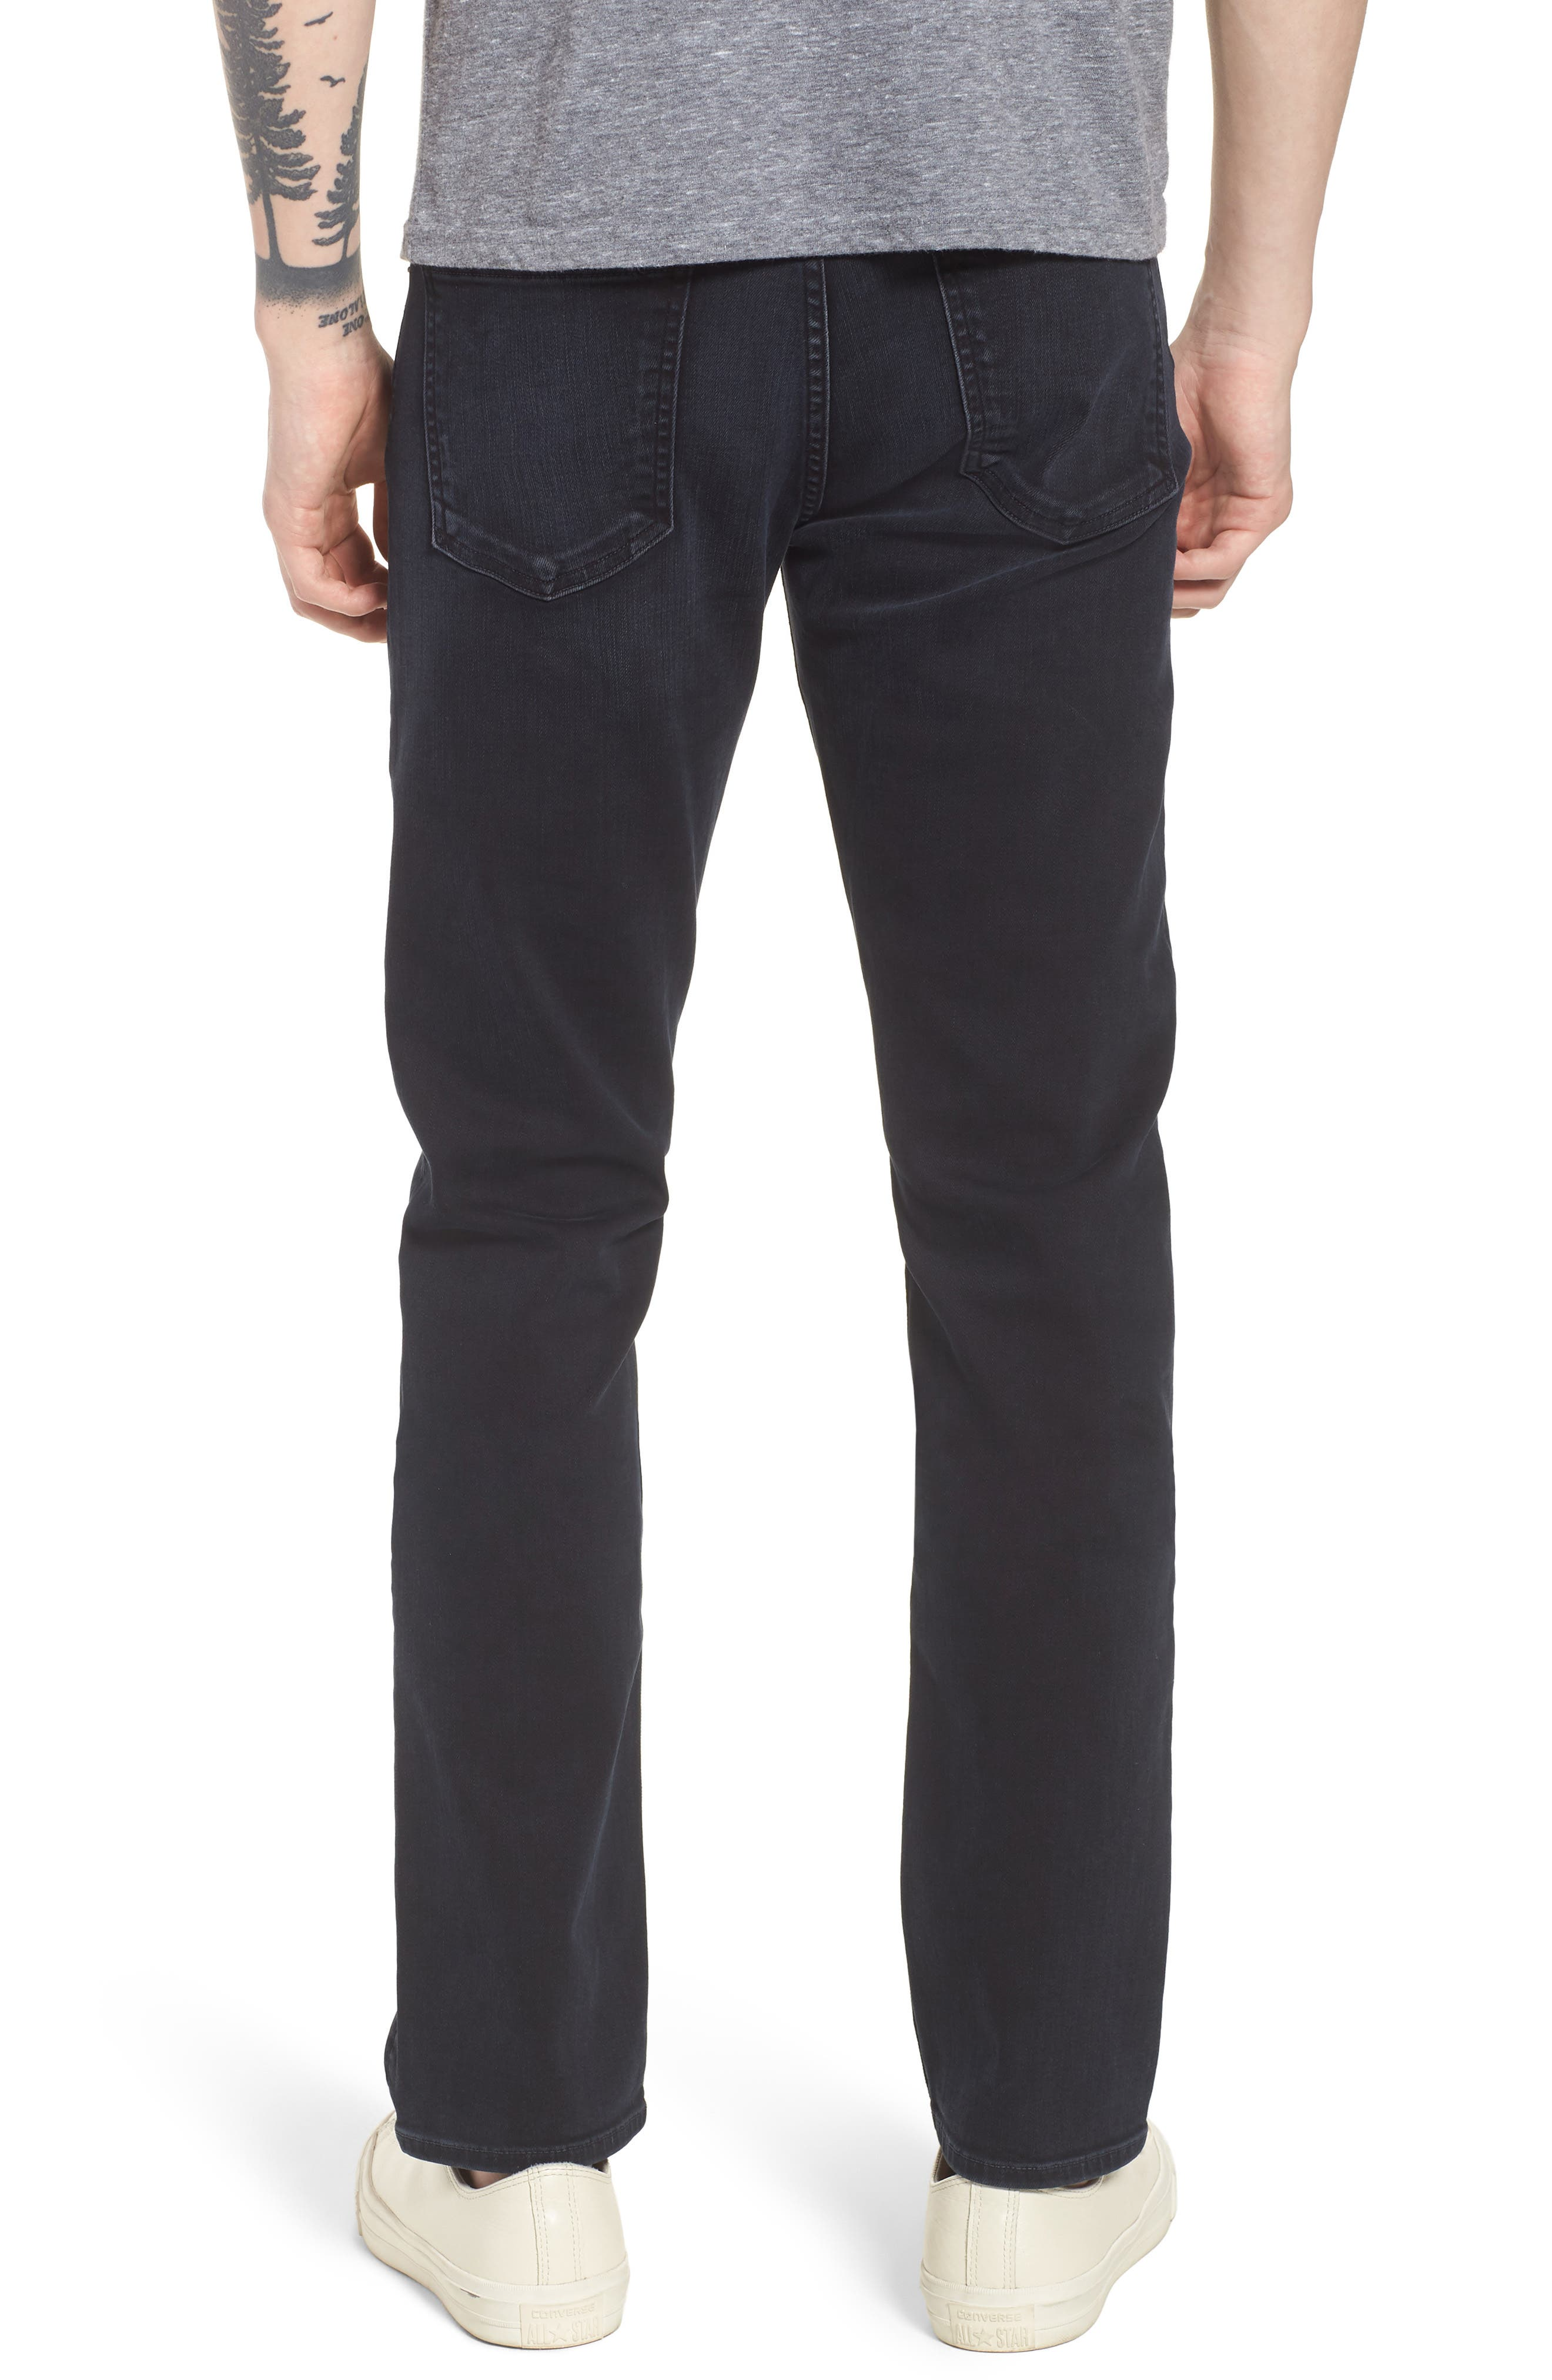 Bowery Slim Fit Jeans,                             Alternate thumbnail 2, color,                             Ink